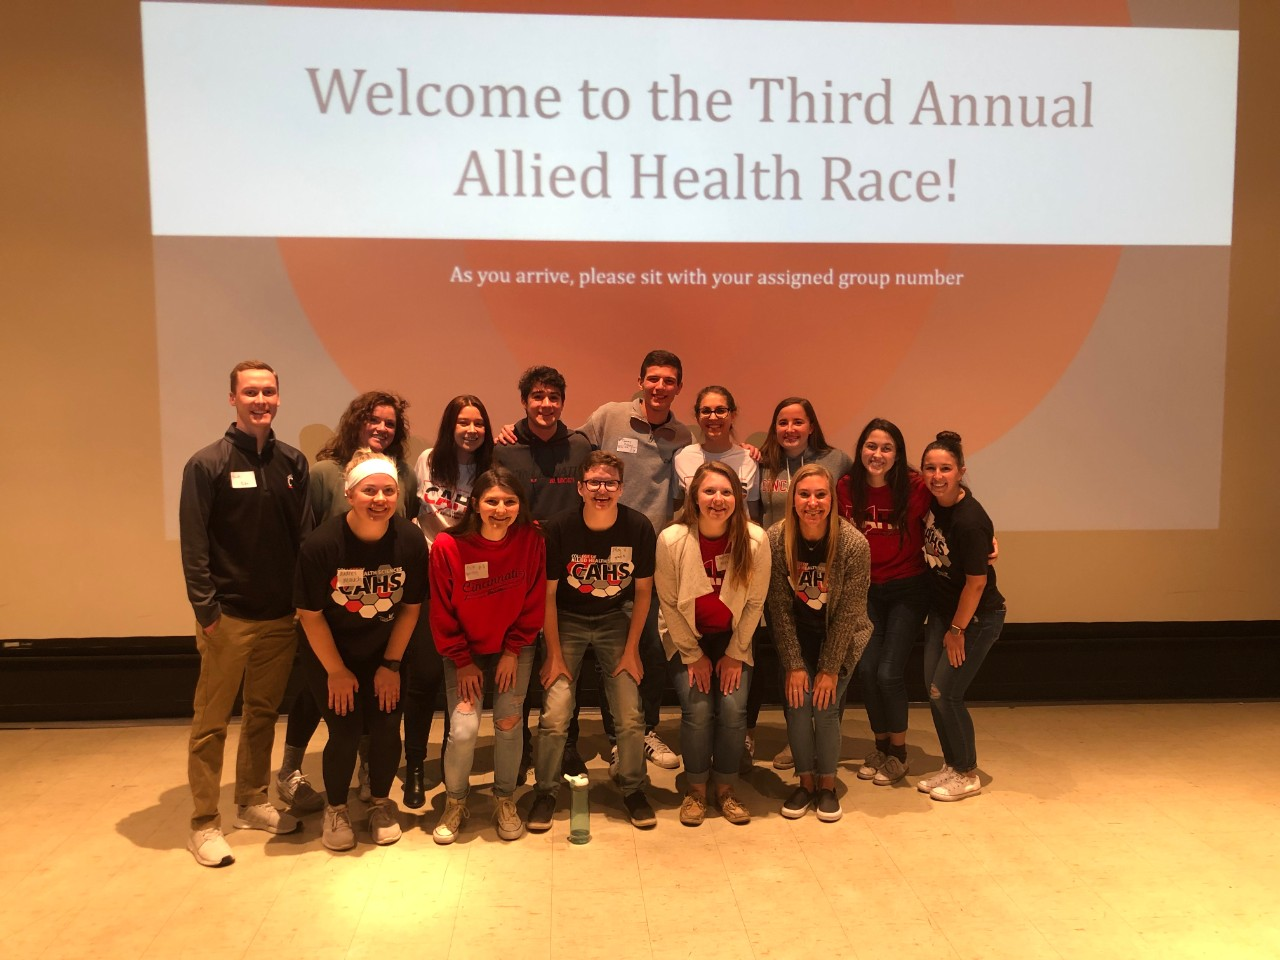 Allied Health Race students pose for a photo